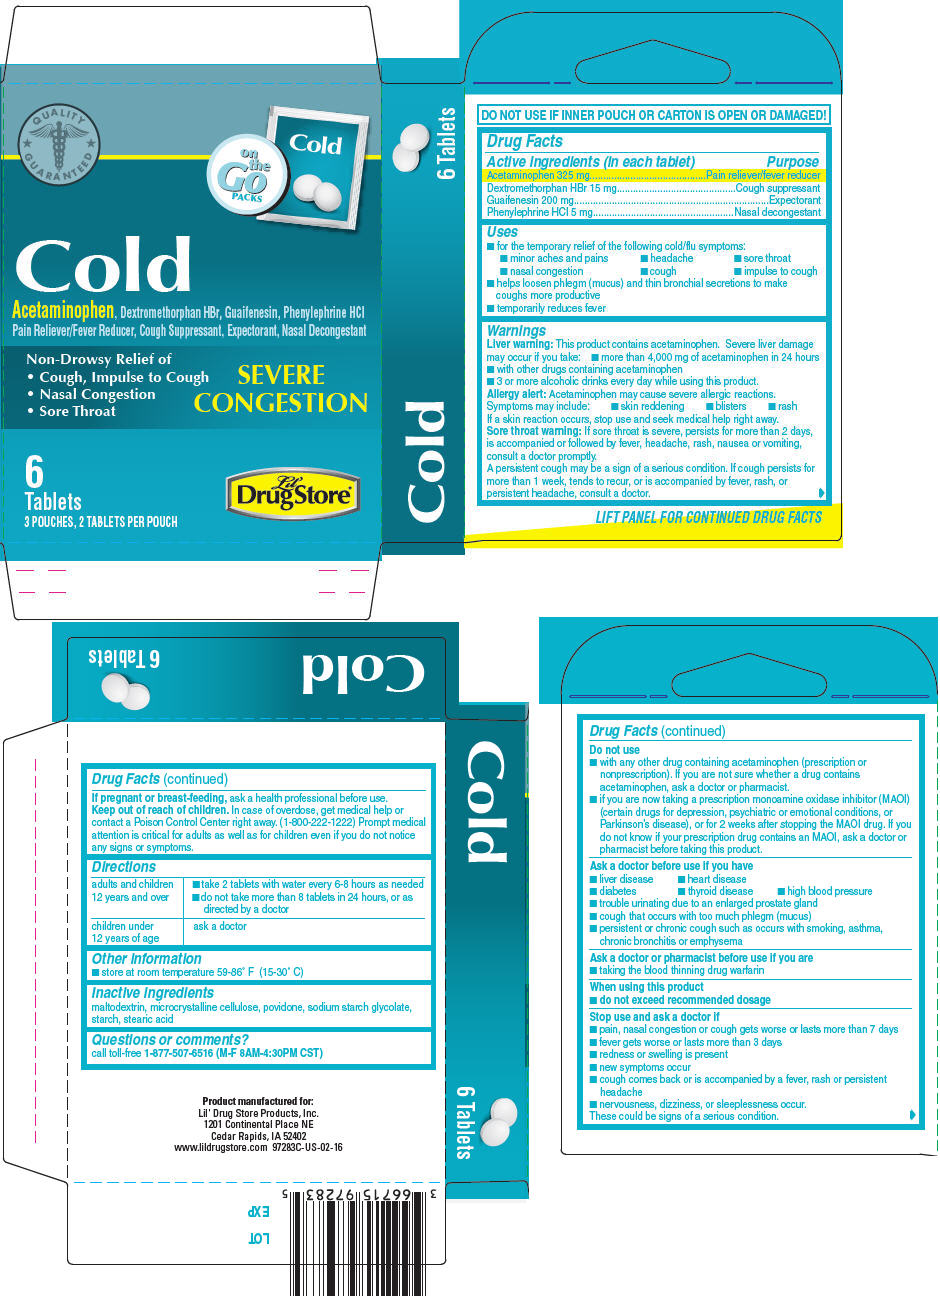 Acetaminophen, Dextromethorphan Hydrobromide, Guaifenesin, and Phenylephrine Hydrochloride (Lil Drug Store Cold Relief)